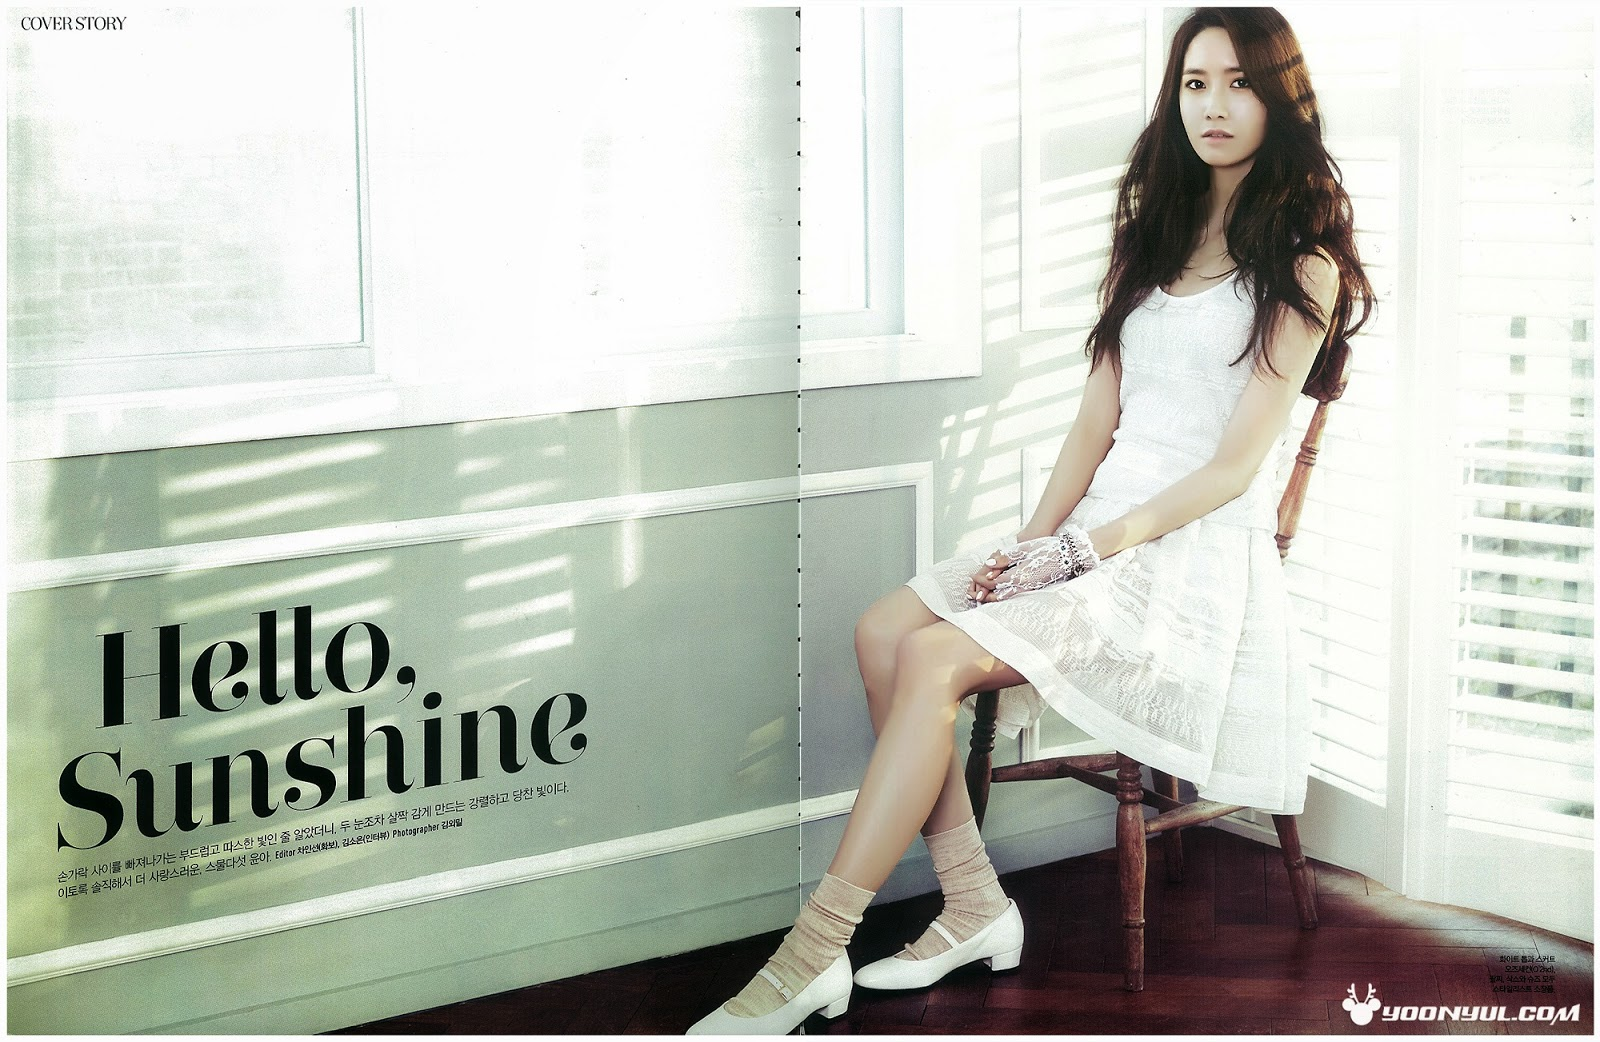 yoona ceci march 2014 wallpaper hd yoona 1600x1042